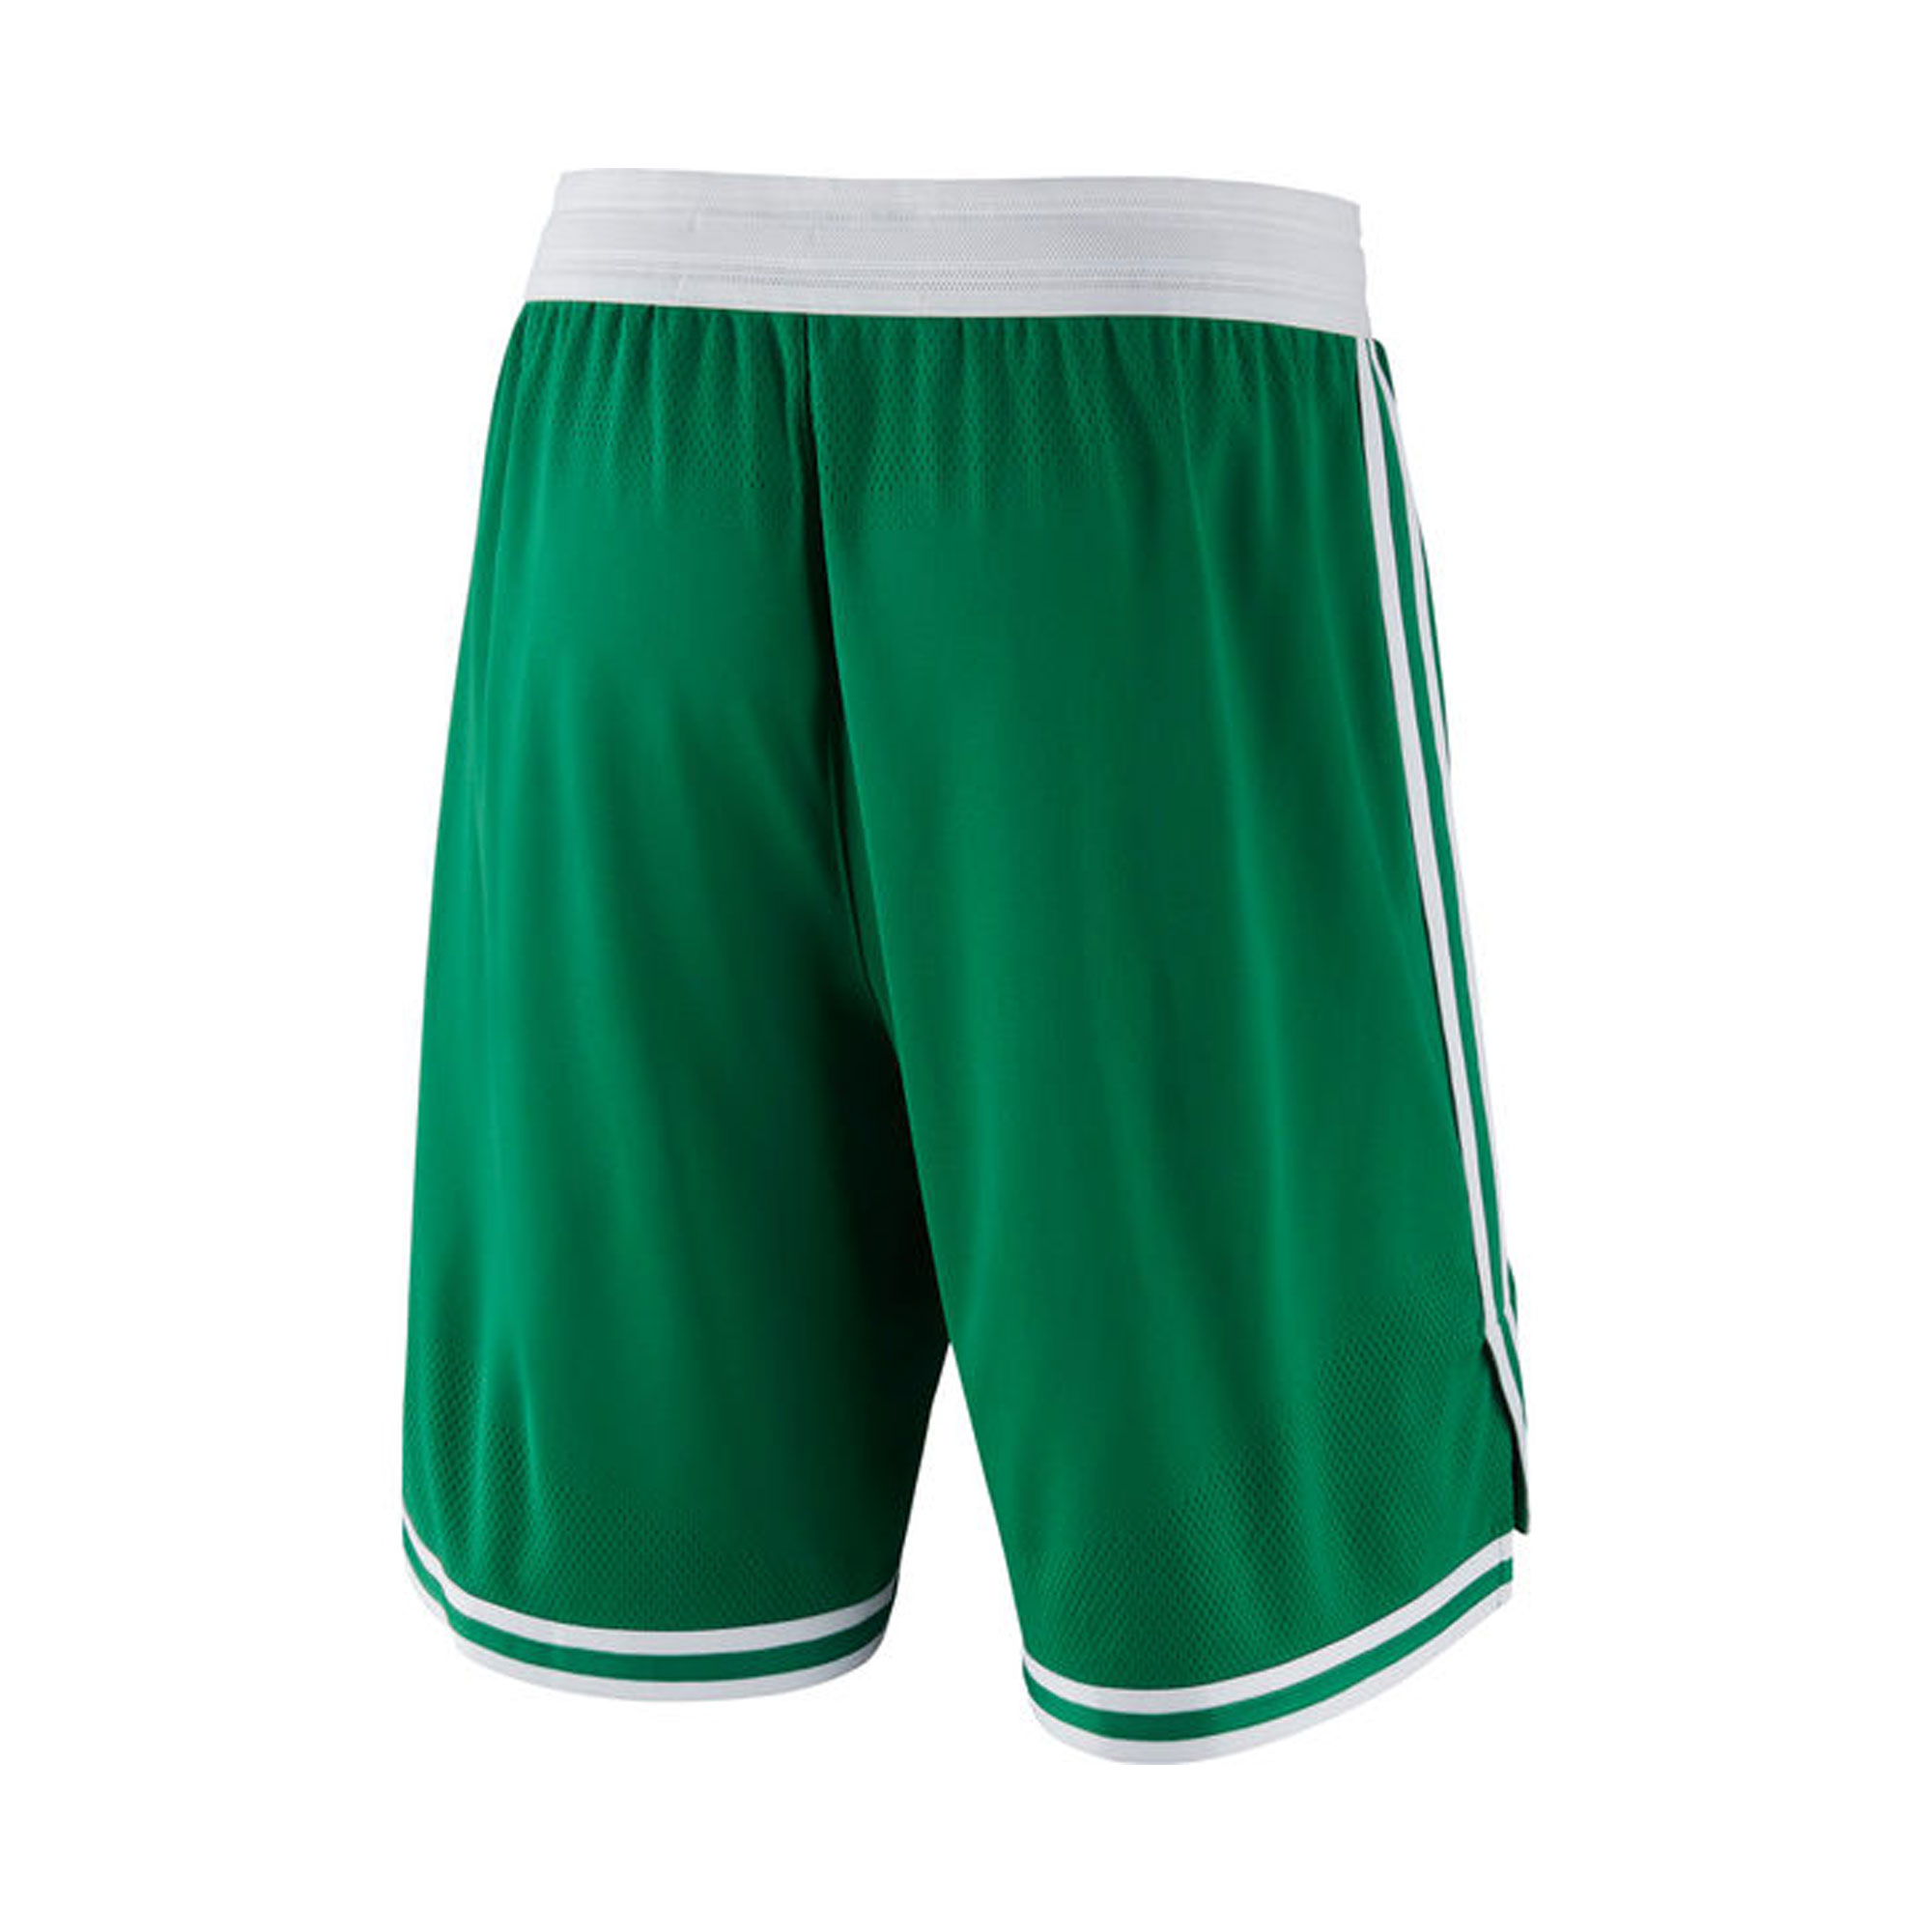 Boston Celtics Short (SRT-GRN-CELTICS)